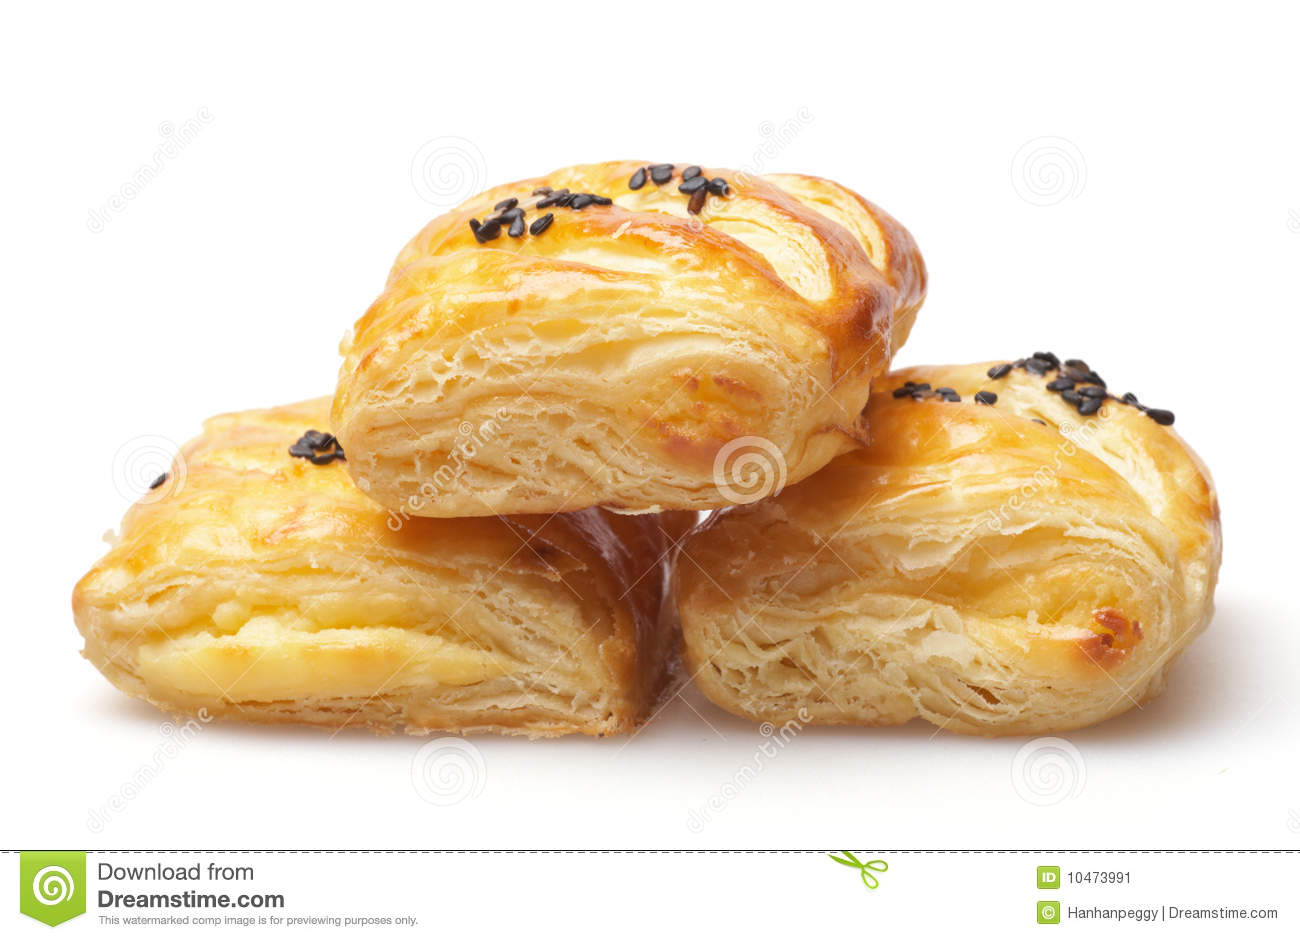 Peanut Butter Puff Pastry Stock Image - Image: 10473991